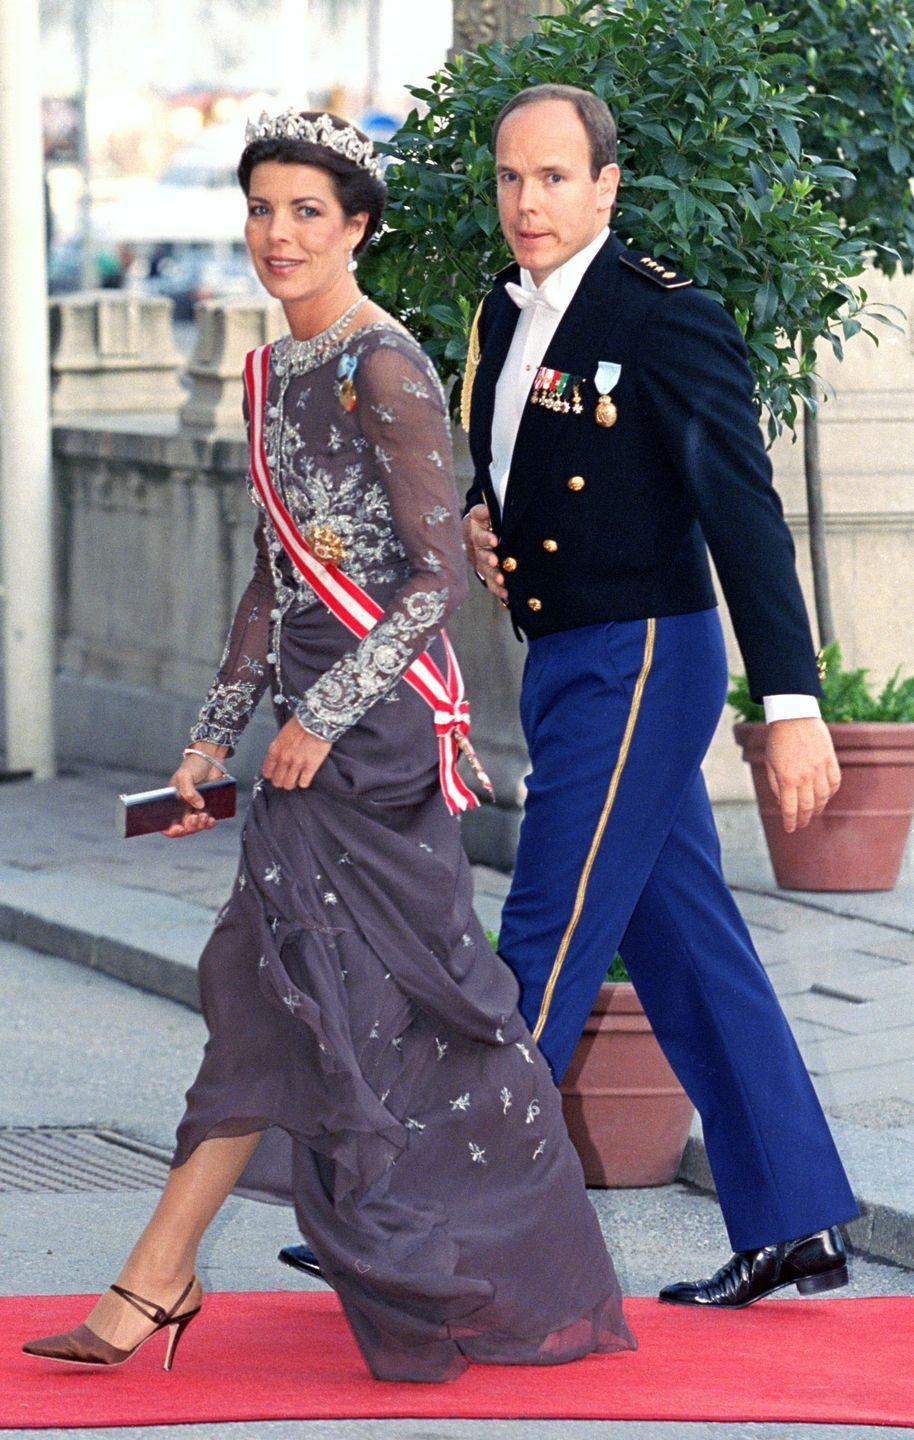 <p>Princess Caroline, who doesn't often wear tiaras, wore her grandmother Princess Charlotte's Cartier Pearl Drop Tiara (along with her Diamond Fringe Tiara, which Caroline exclusively wears as a necklace) for the 50th birthday celebrations of Sweden's King Carl Gustav in 1996.</p>